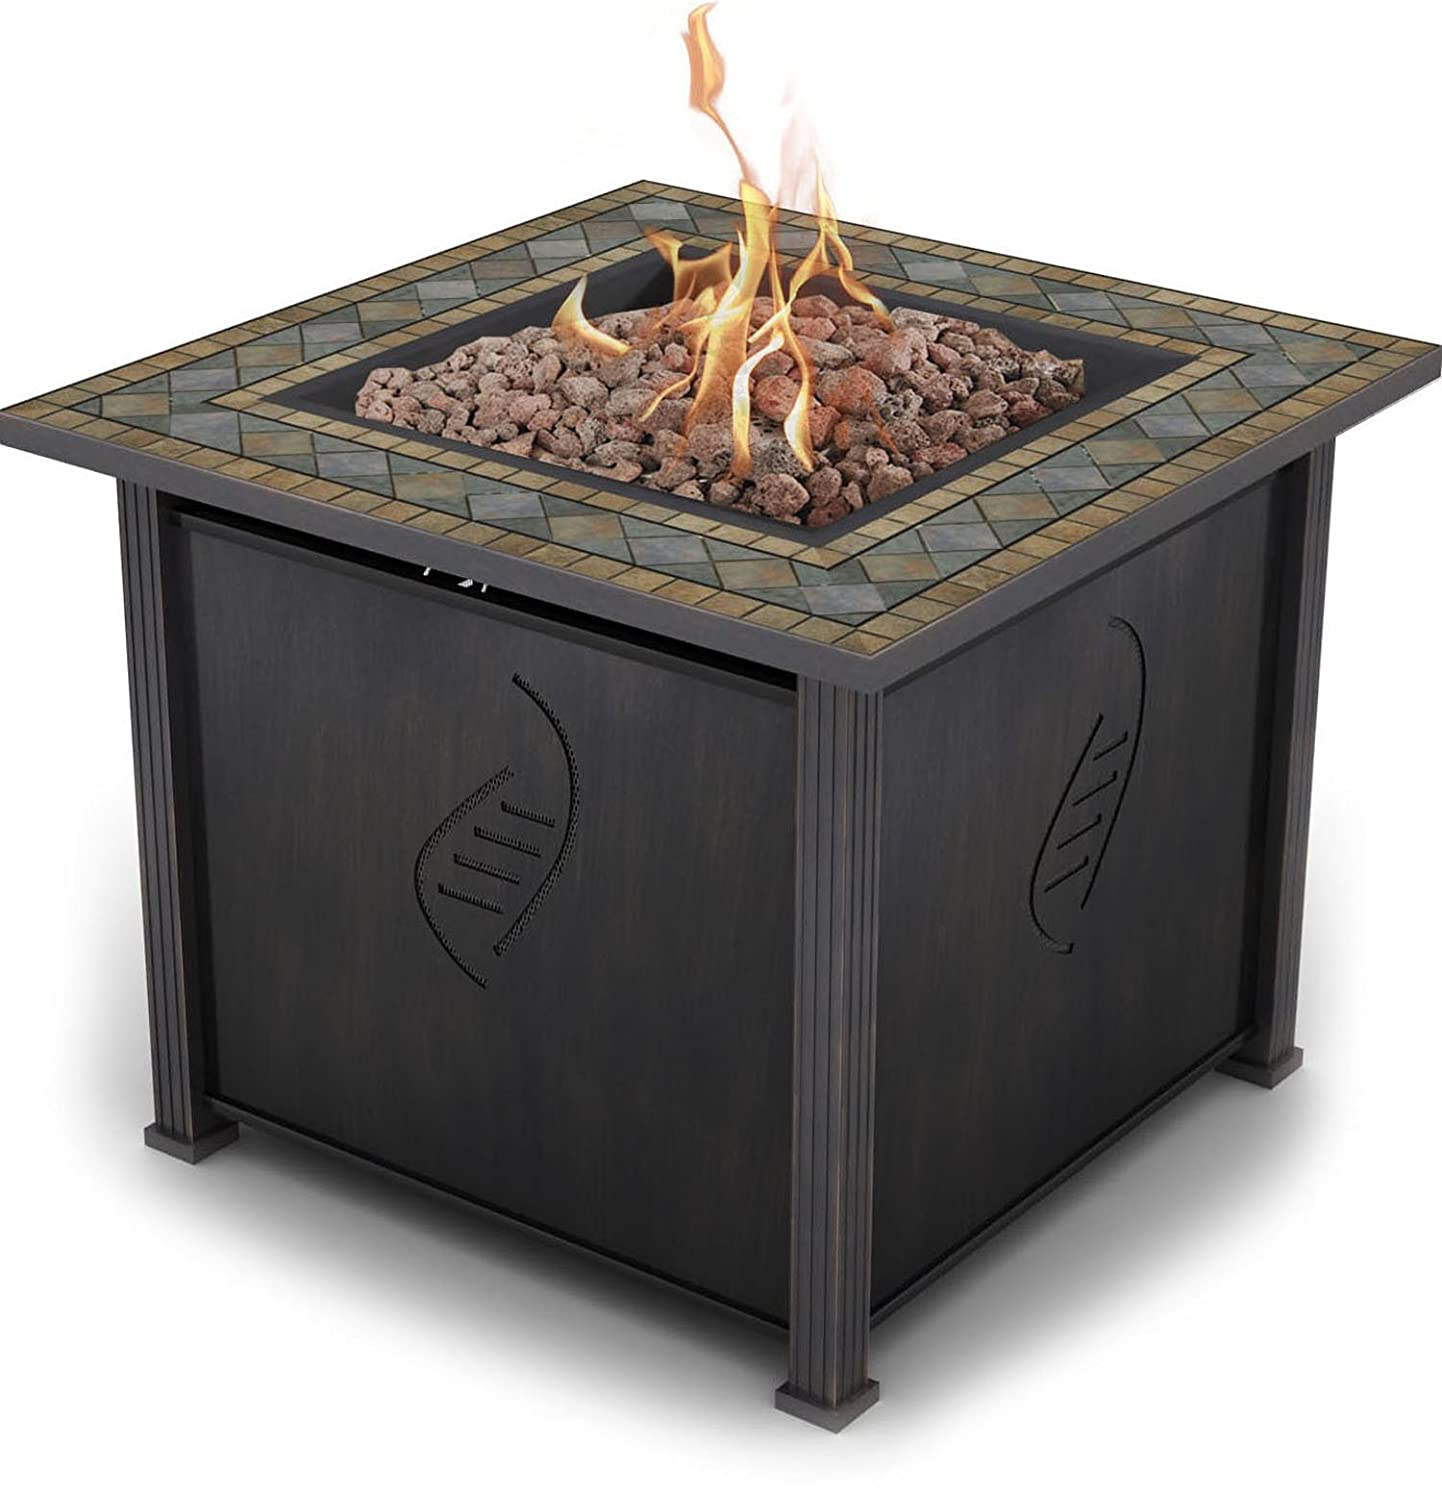 Bond Rockwell 68156 Gas Fire Table, 30-Inch